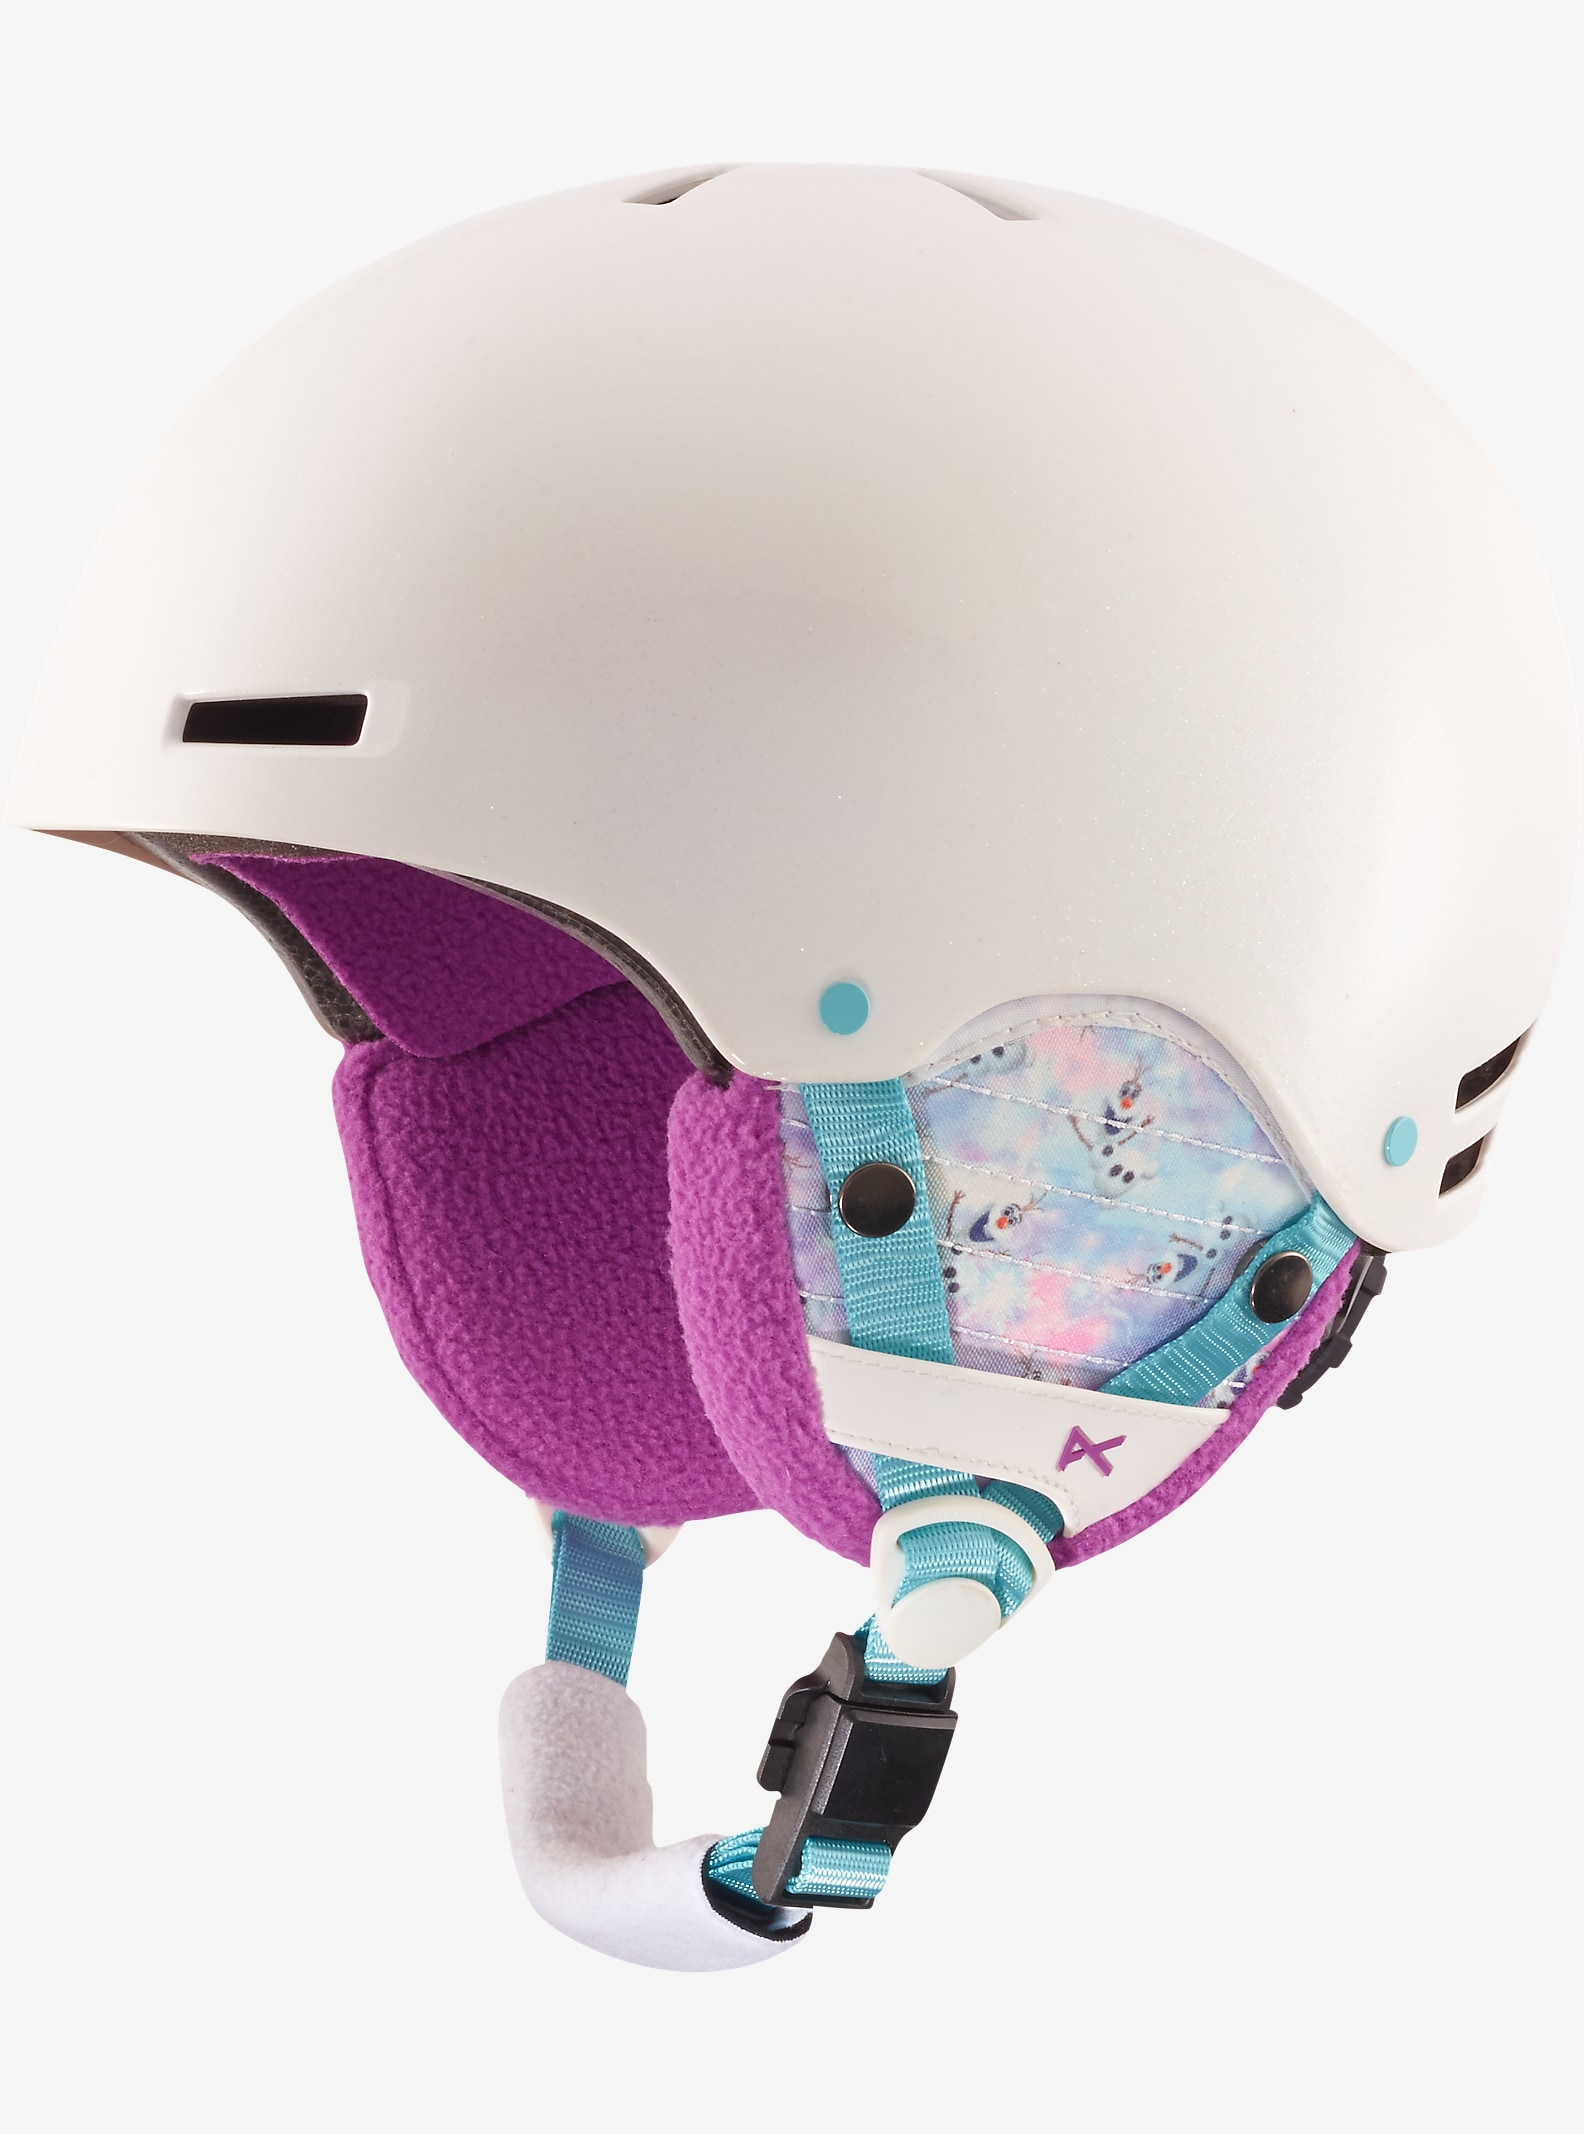 Disney Frozen Rime Helmet by anon. shown in Frozen © Disney